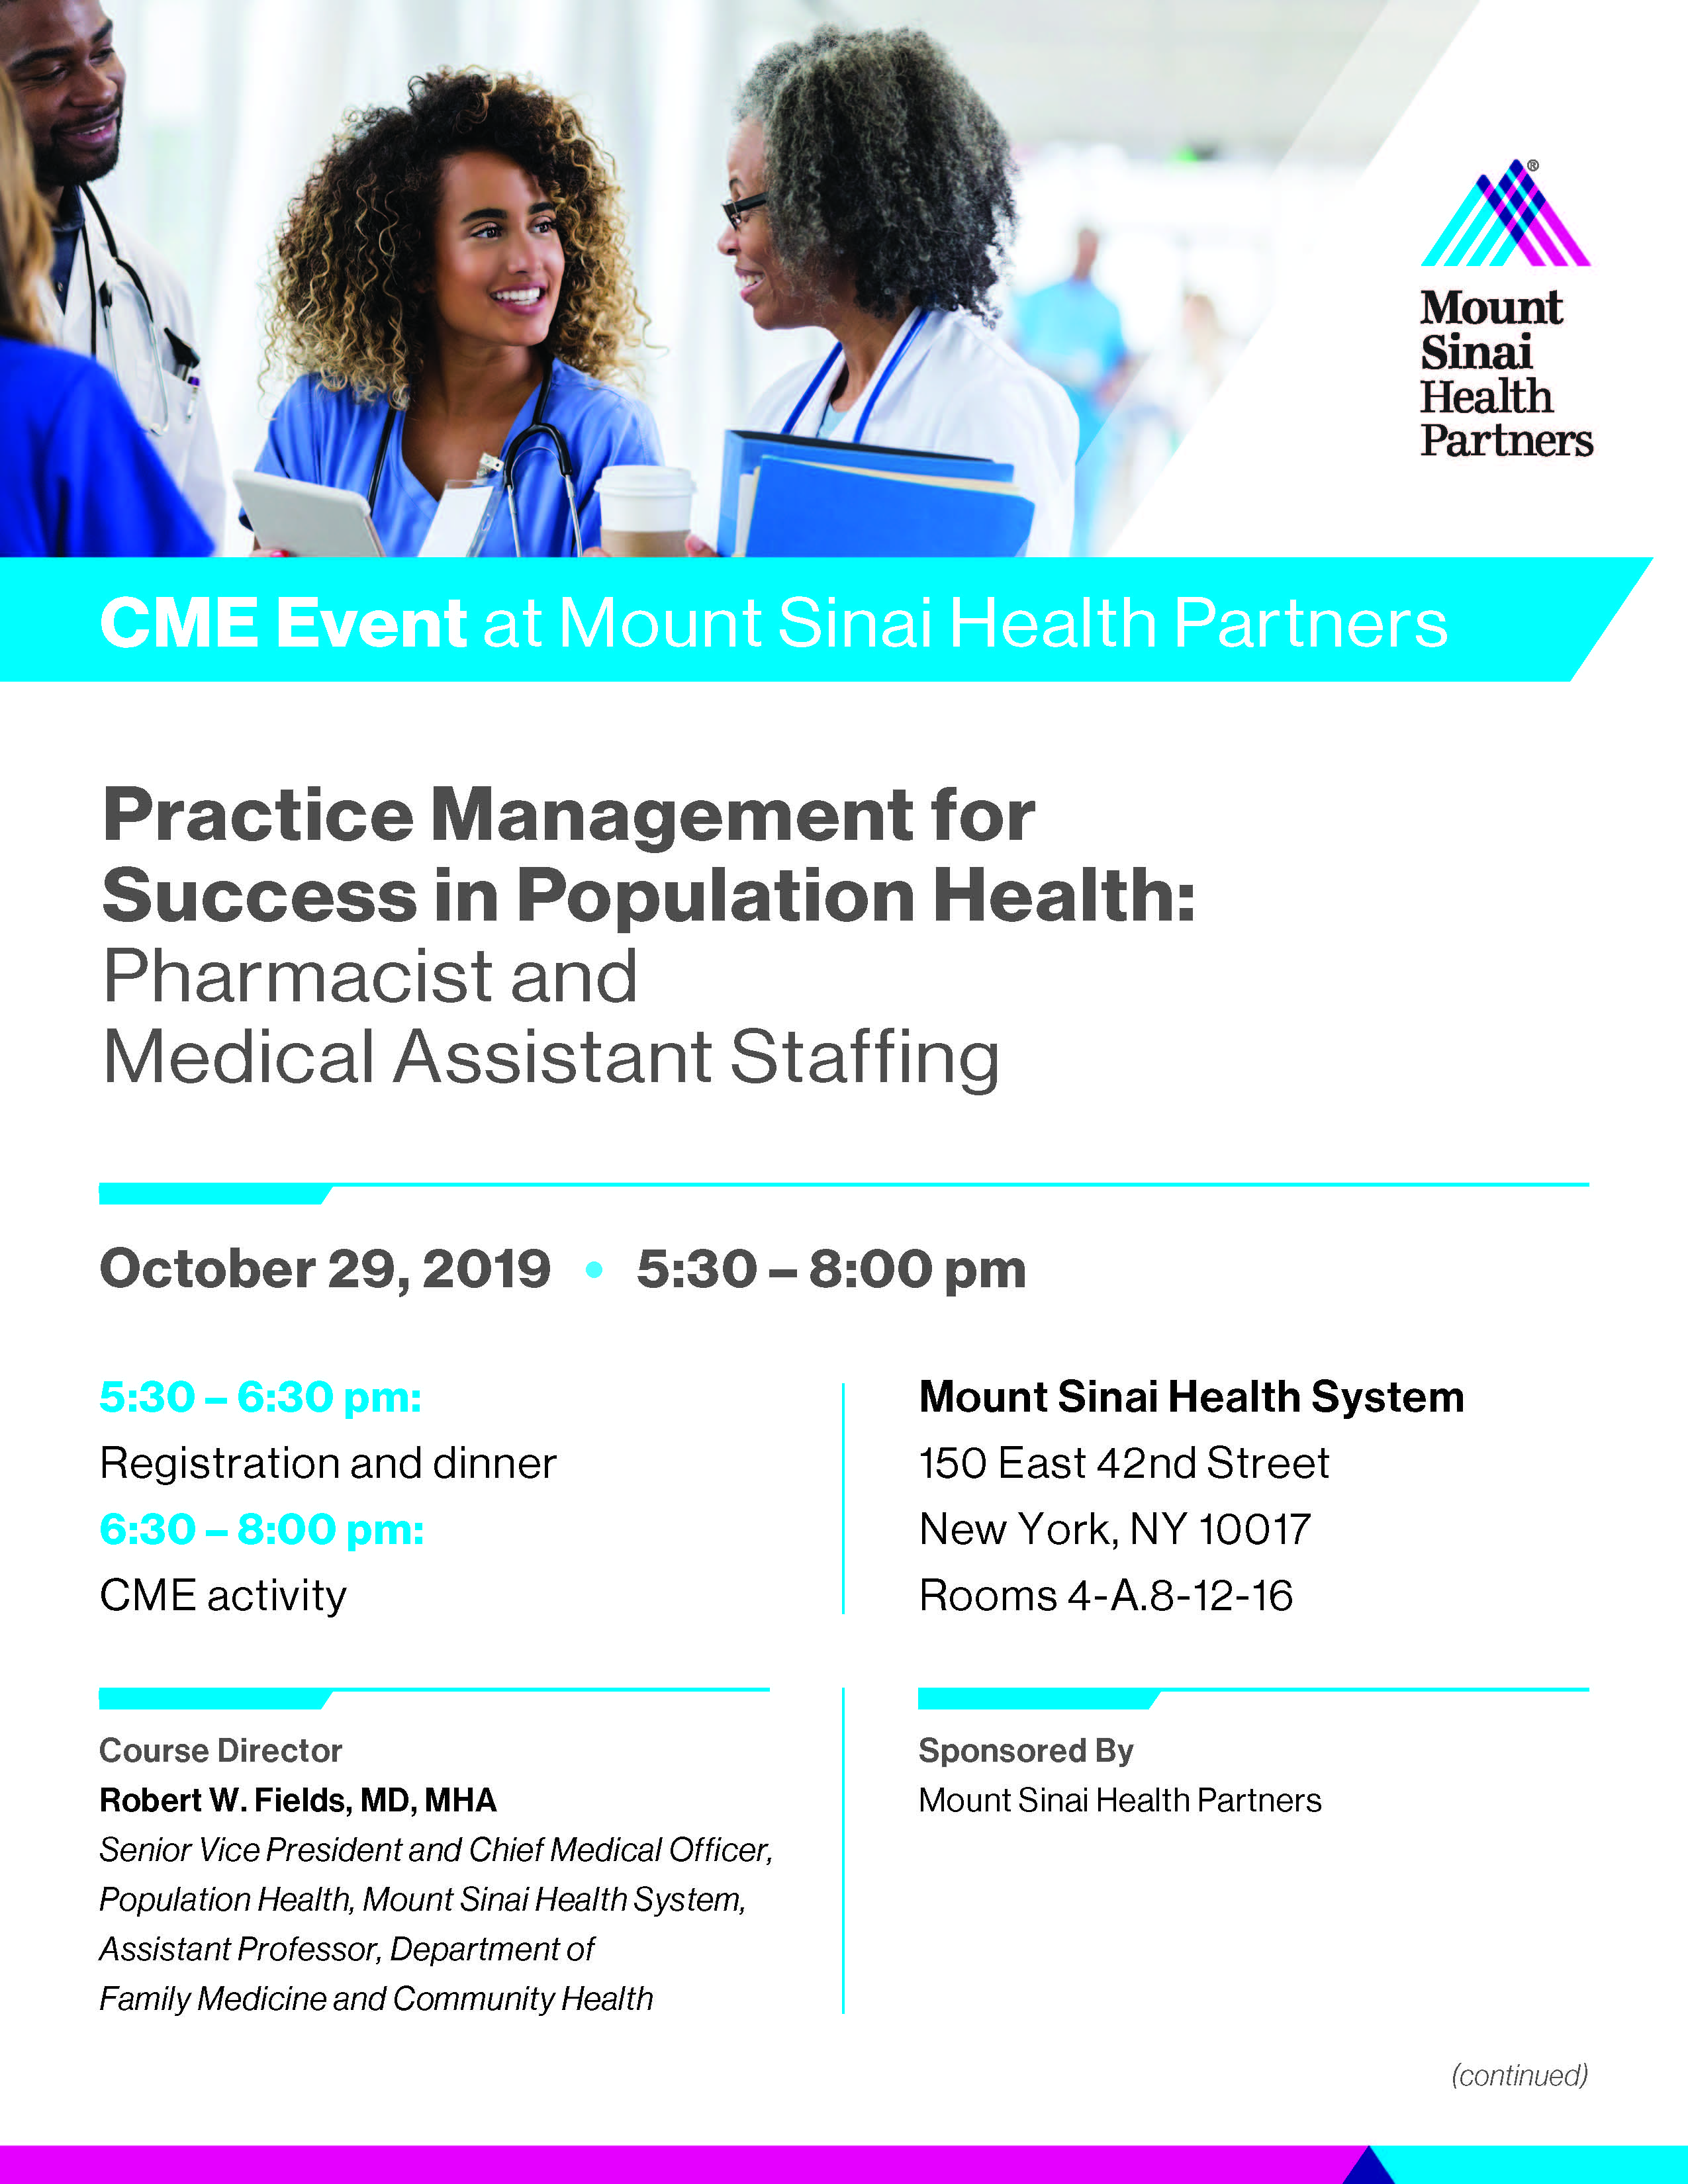 Practice Management for Success in Population Health CME Event: Pharmacist and Medical Assistant Staffing Banner